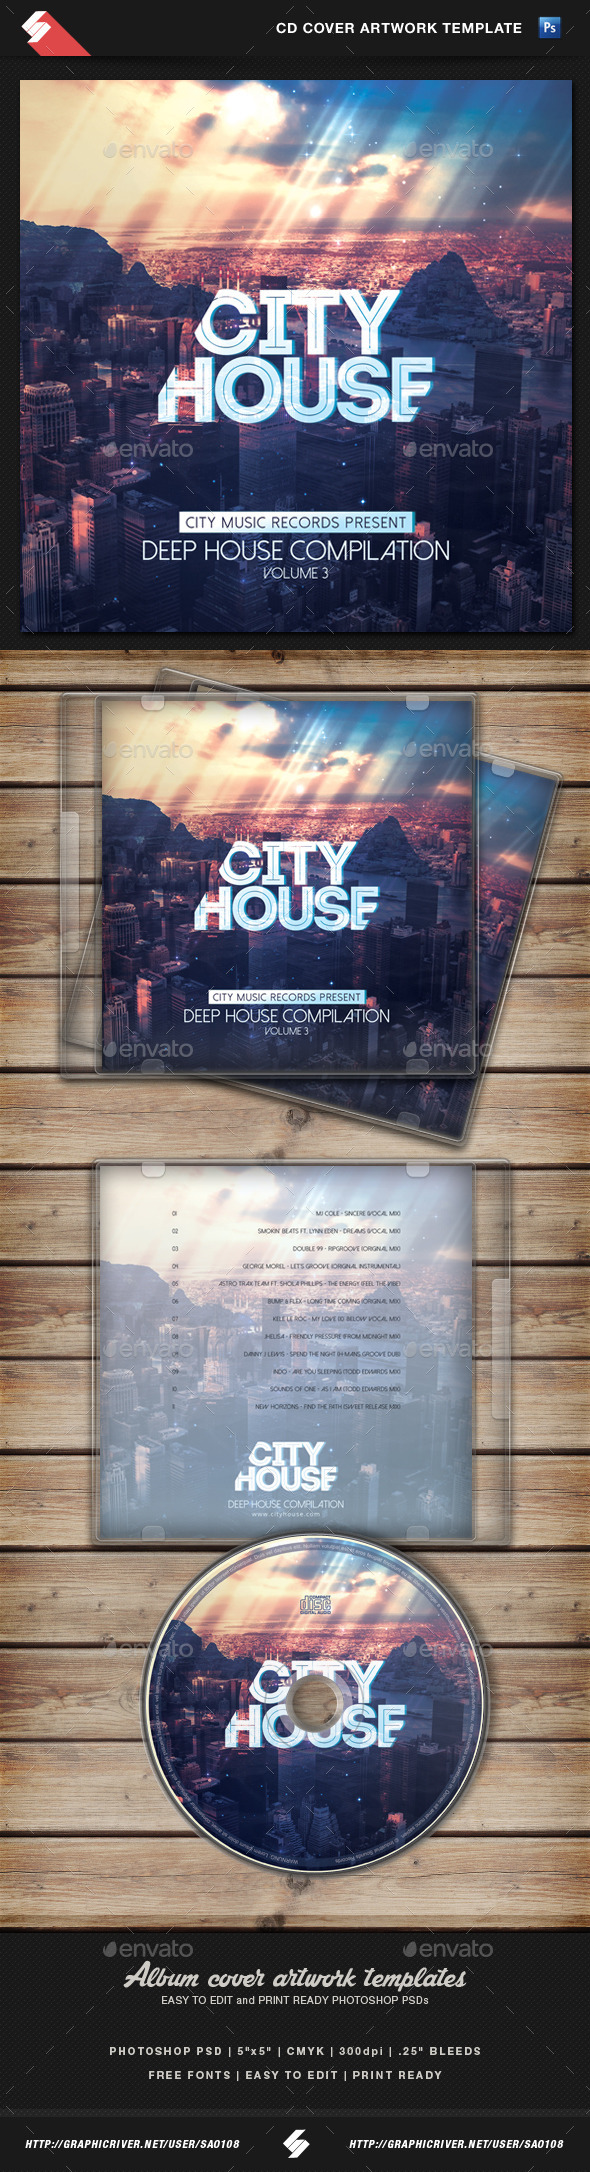 GraphicRiver City House CD Cover Artwork Template 10927969